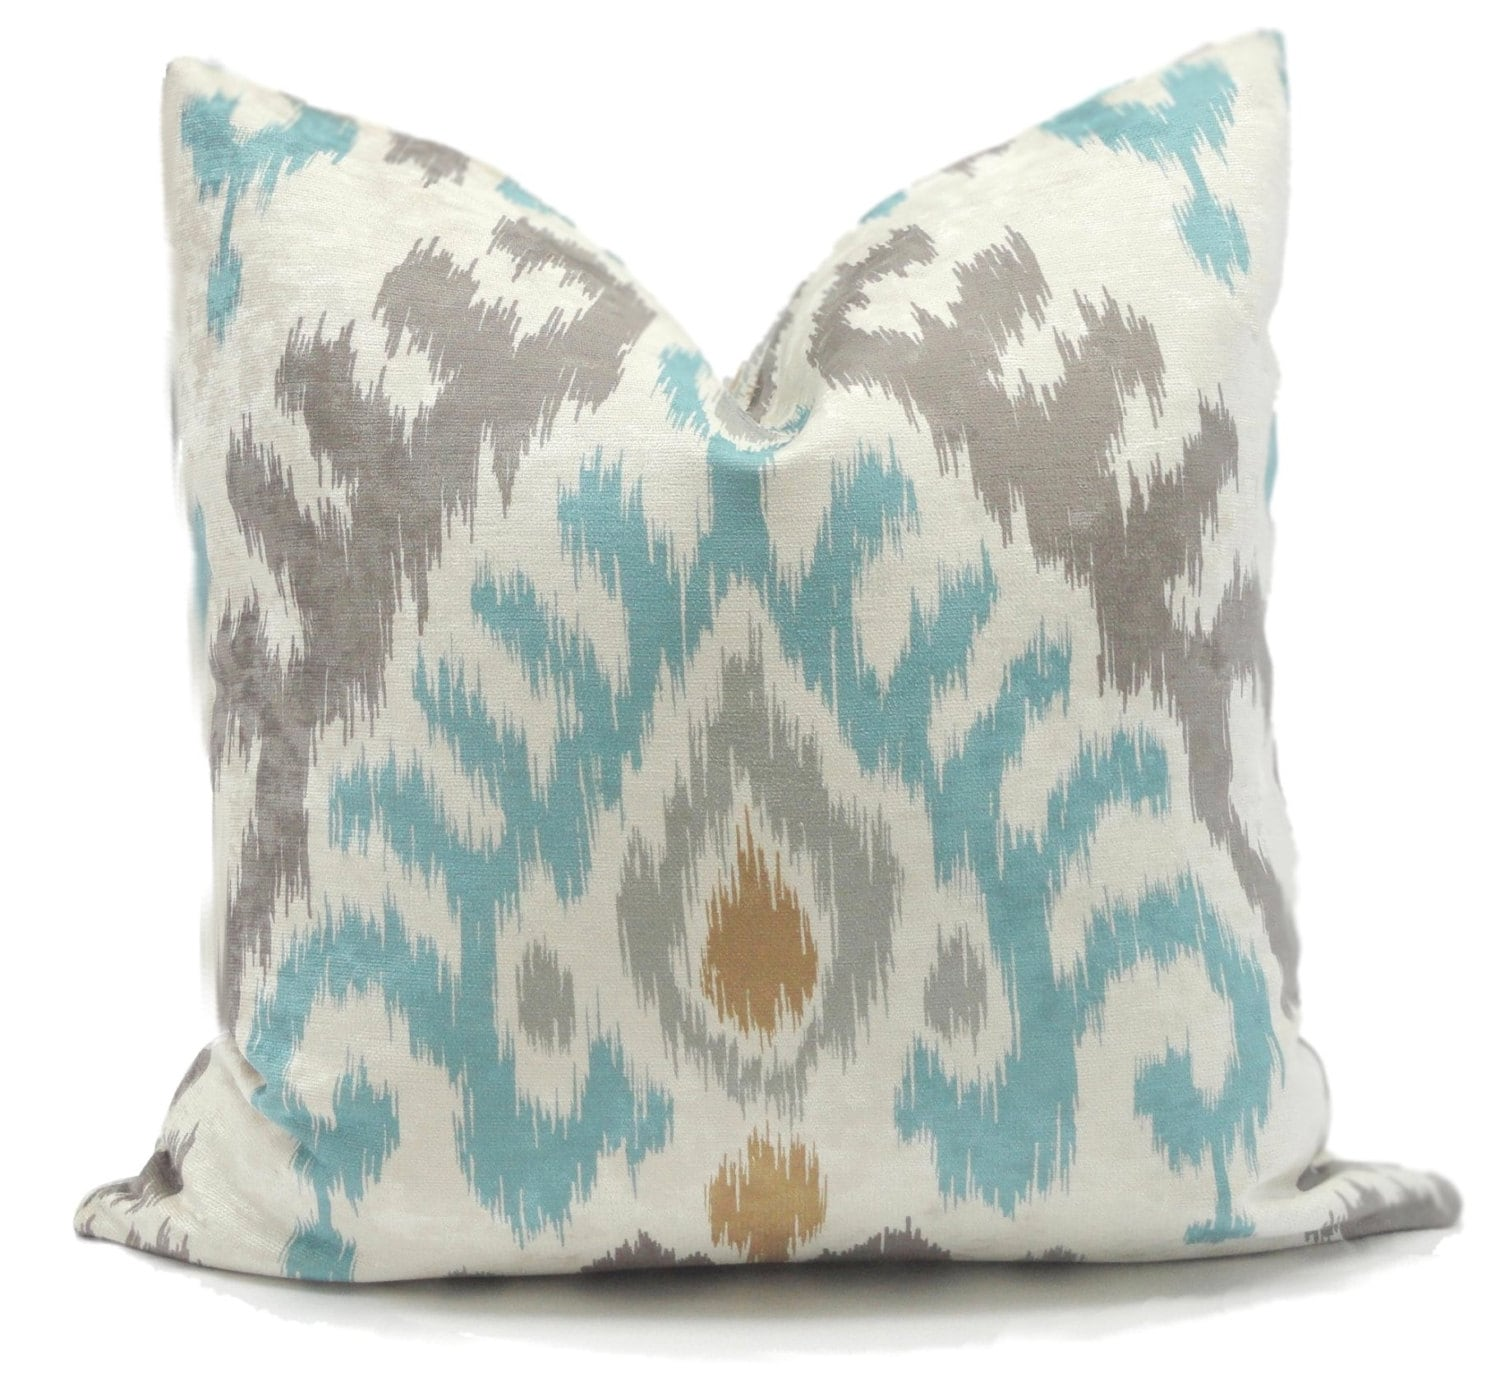 Decorative Pillows Etsy : Kravet Aqua Gray Velvet Ikat Decorative Pillow Cover Lumbar